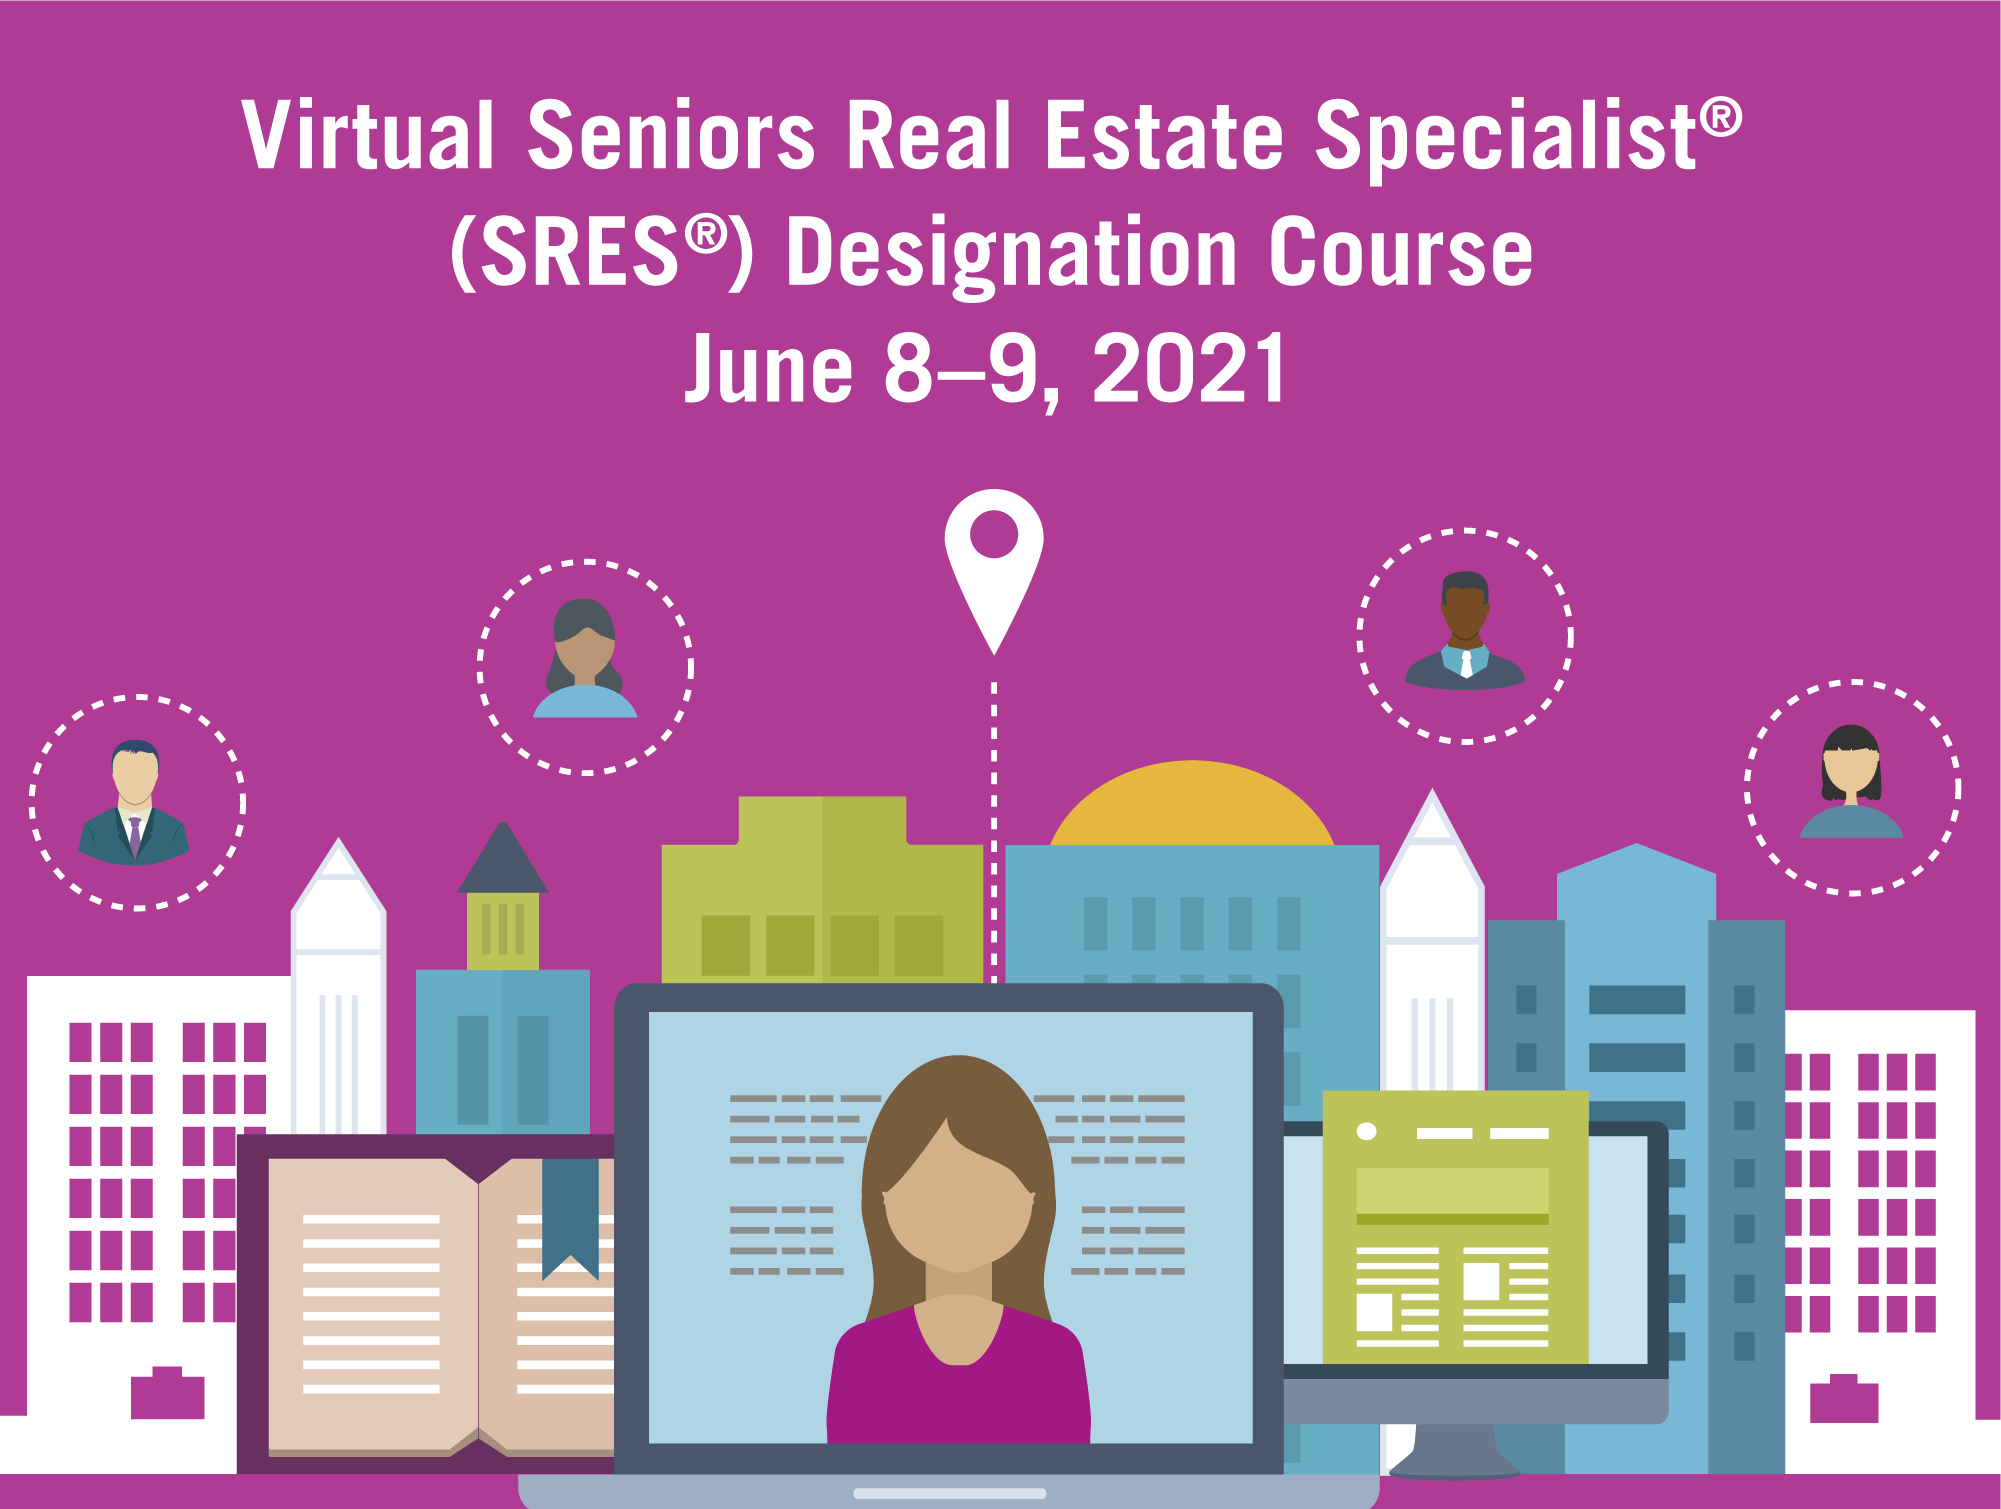 SRES® online education